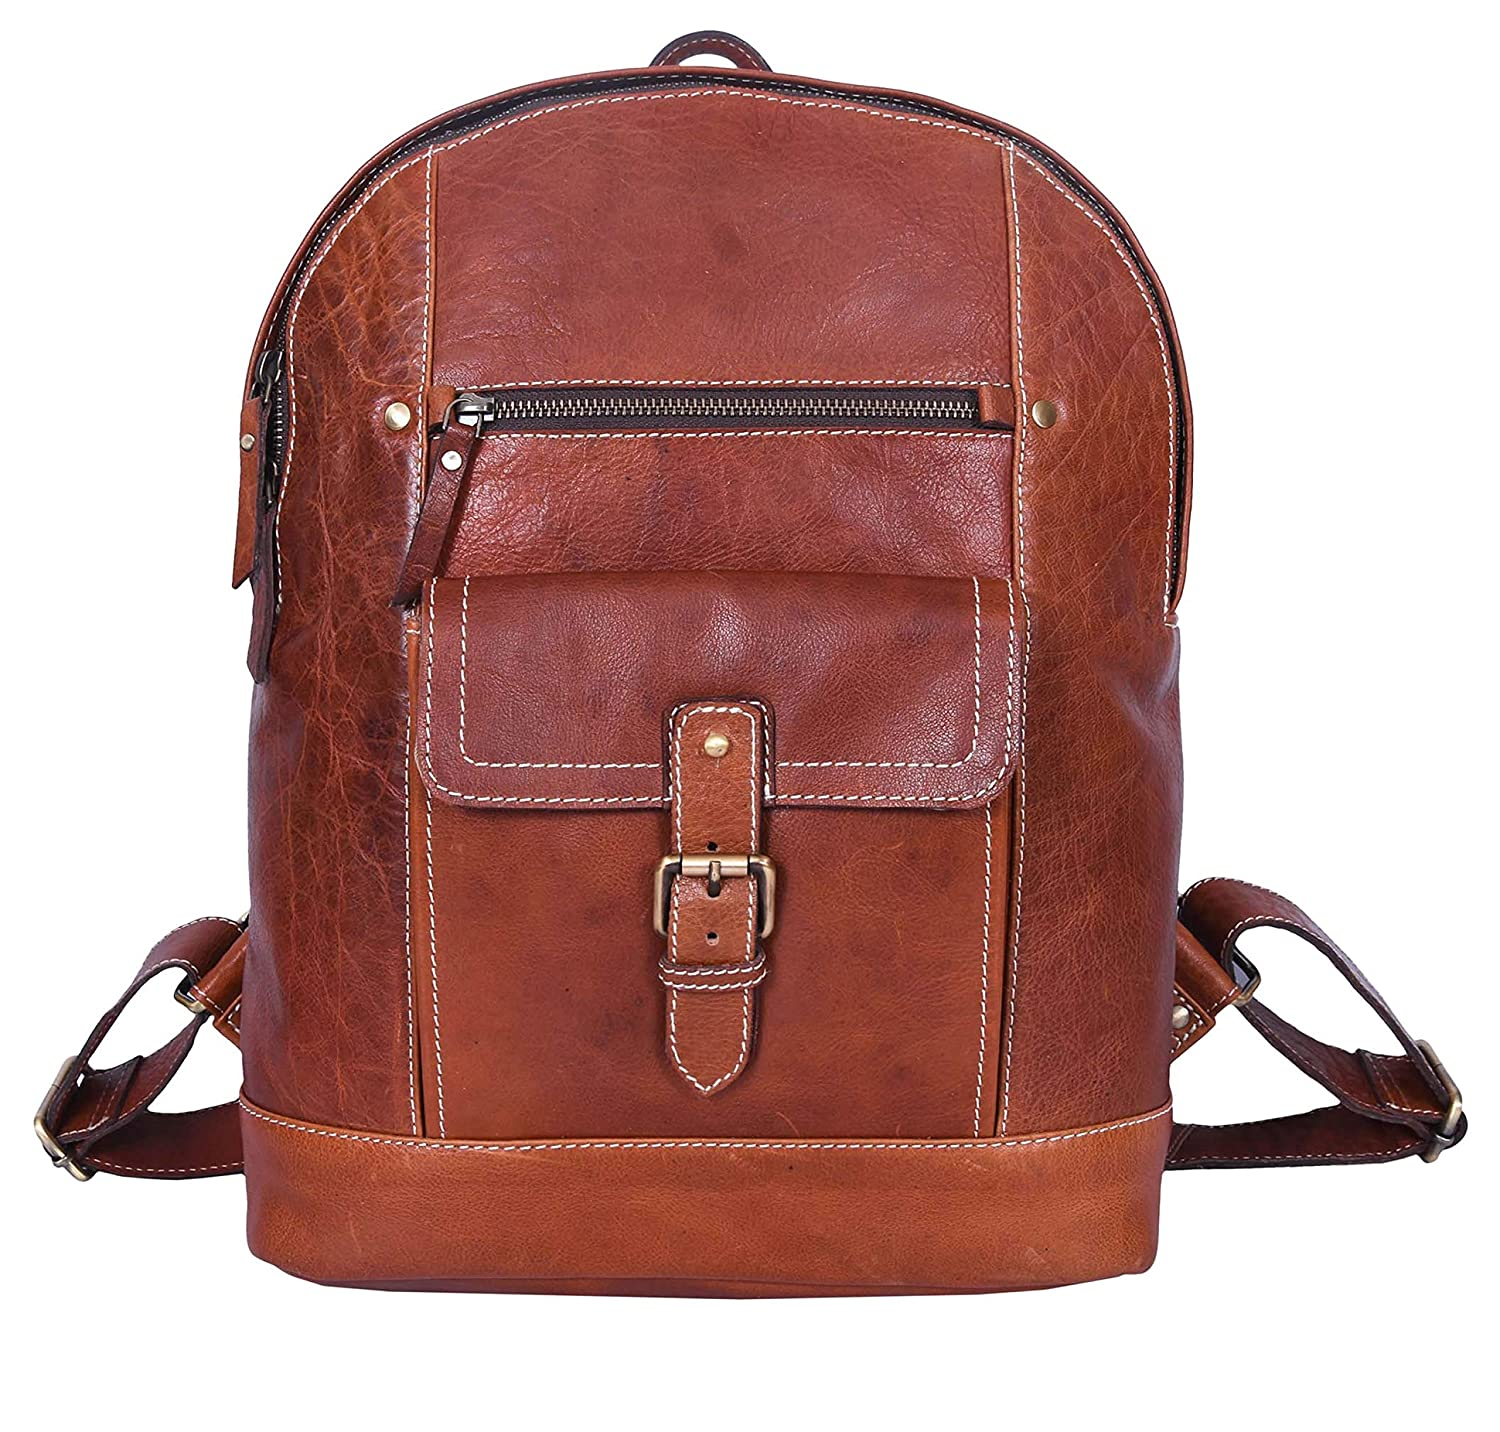 Leather Backpack Laptop Backpack Rucksack Bag by Aaron Leather Goods